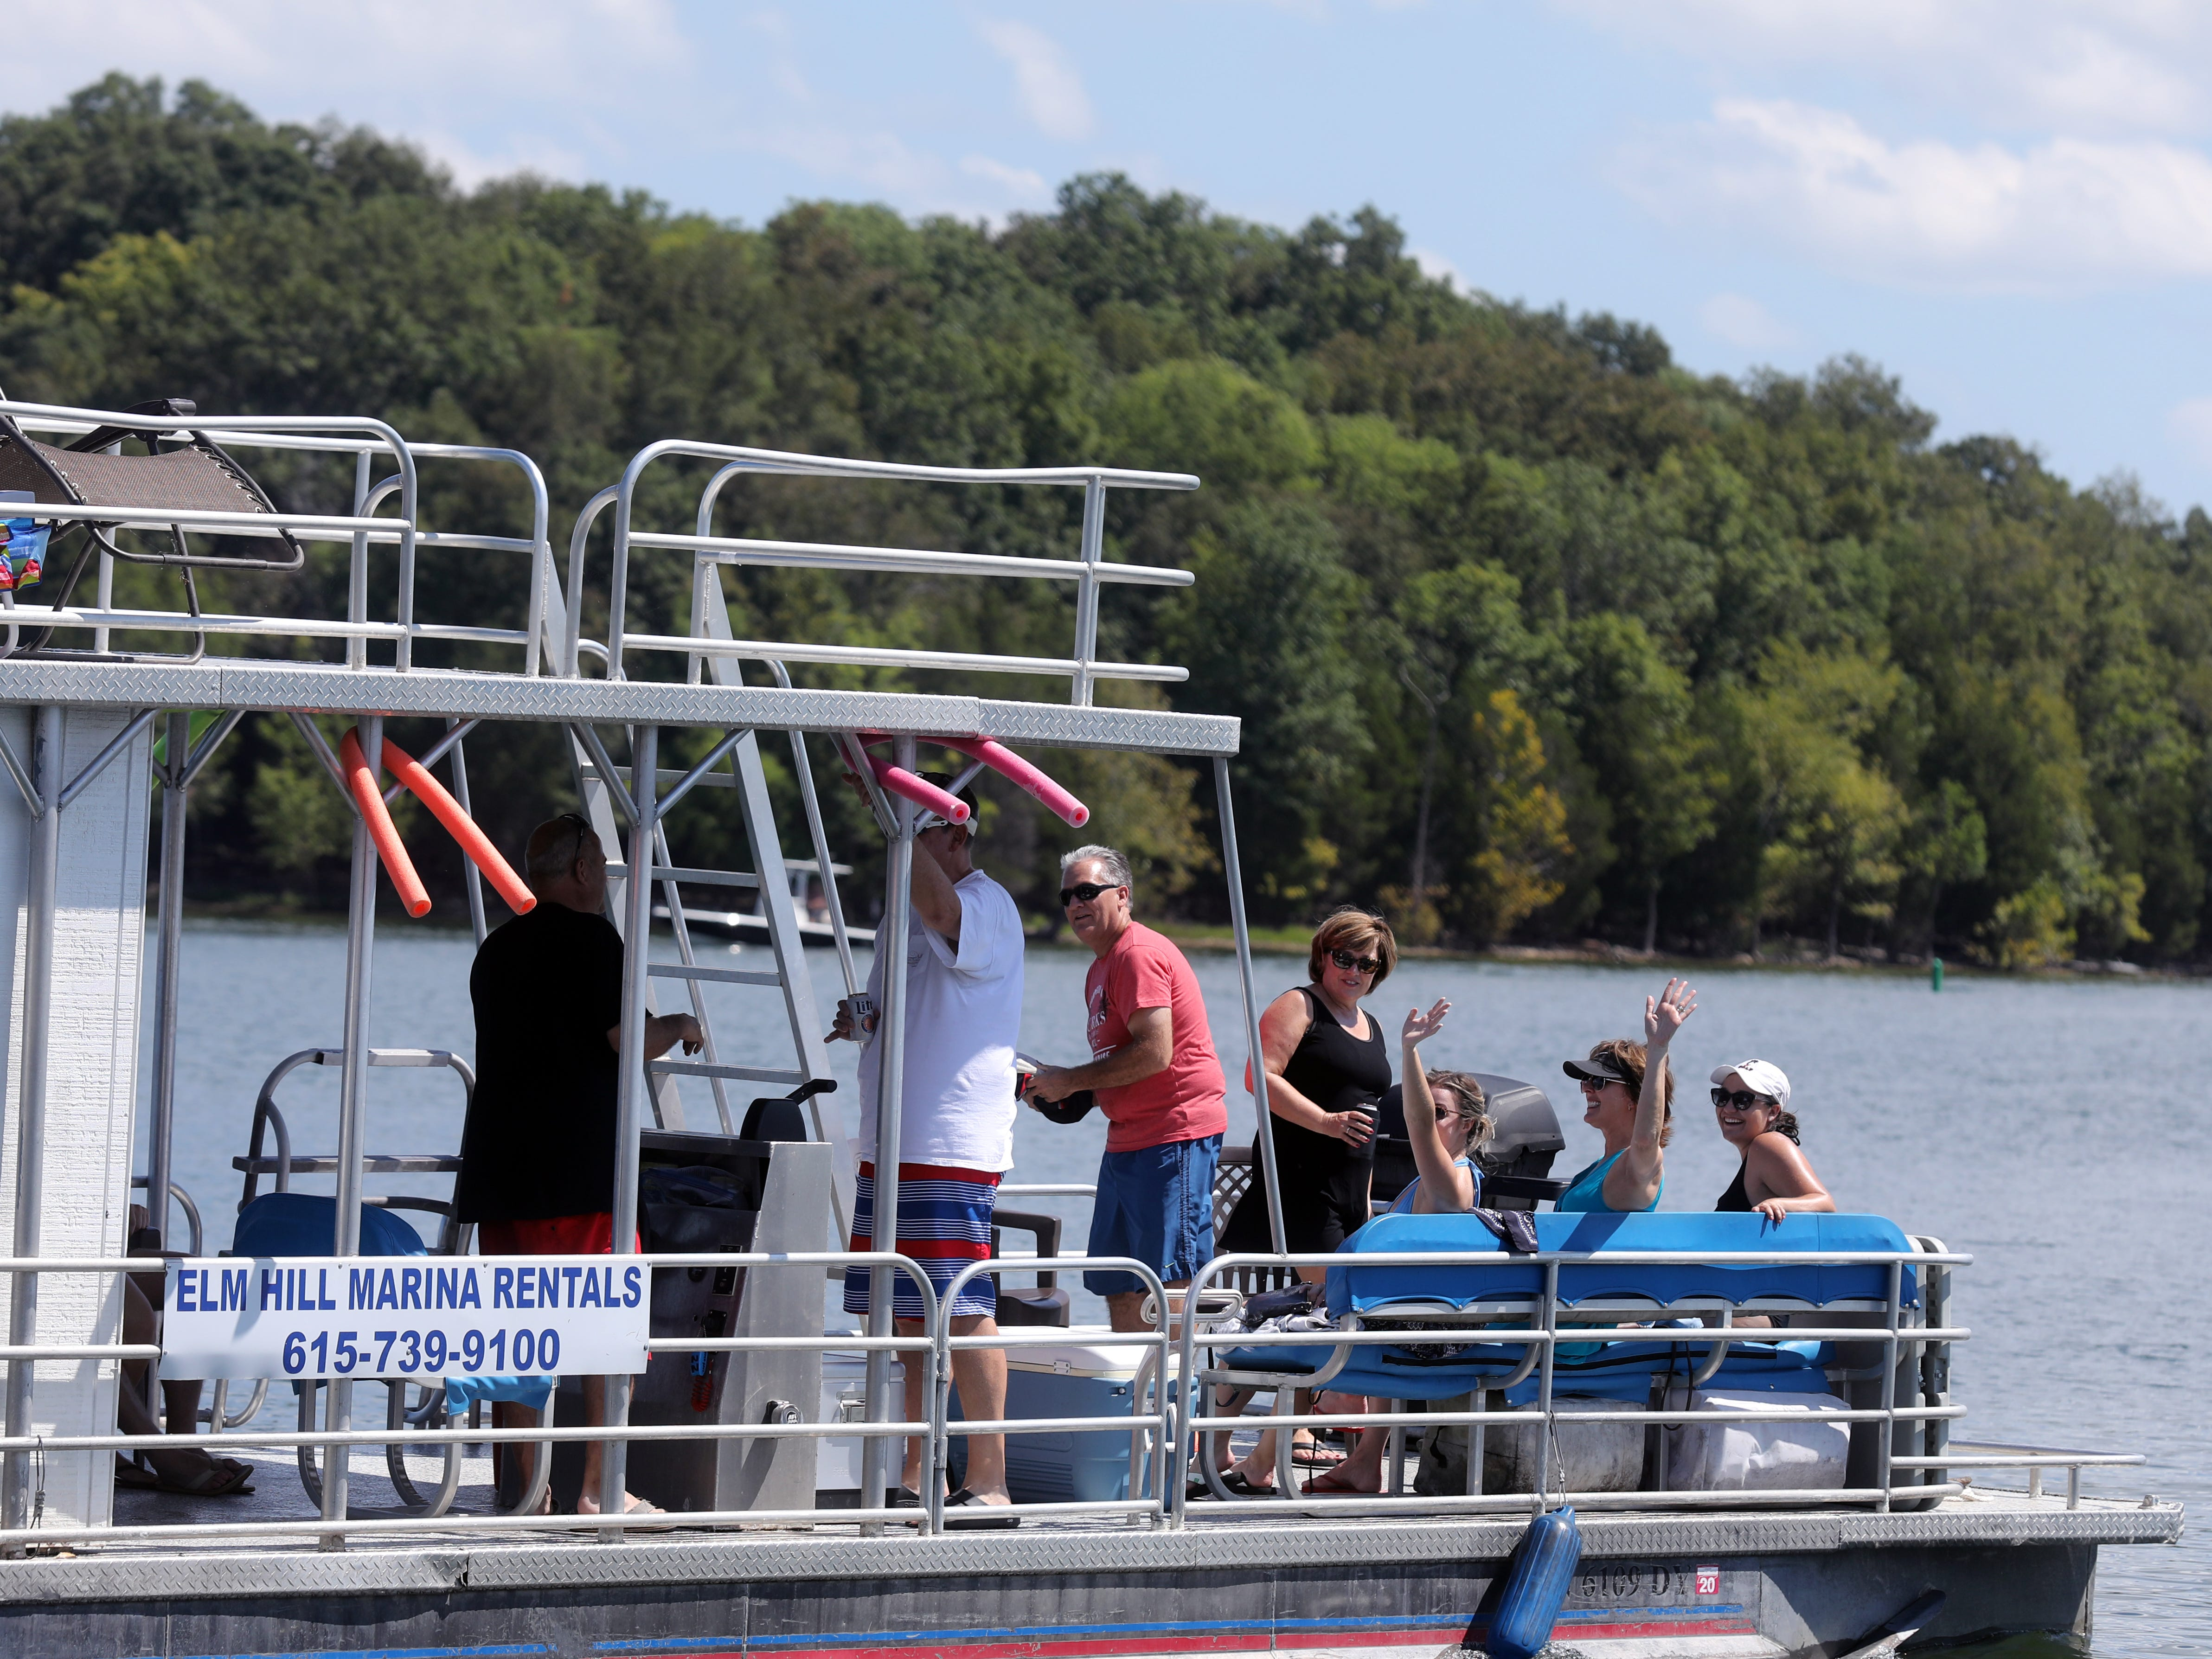 A group of friends departs from Elm Hill Marina on a rental boat for a day on Percy Priest Lake Sunday September 2, 2018.